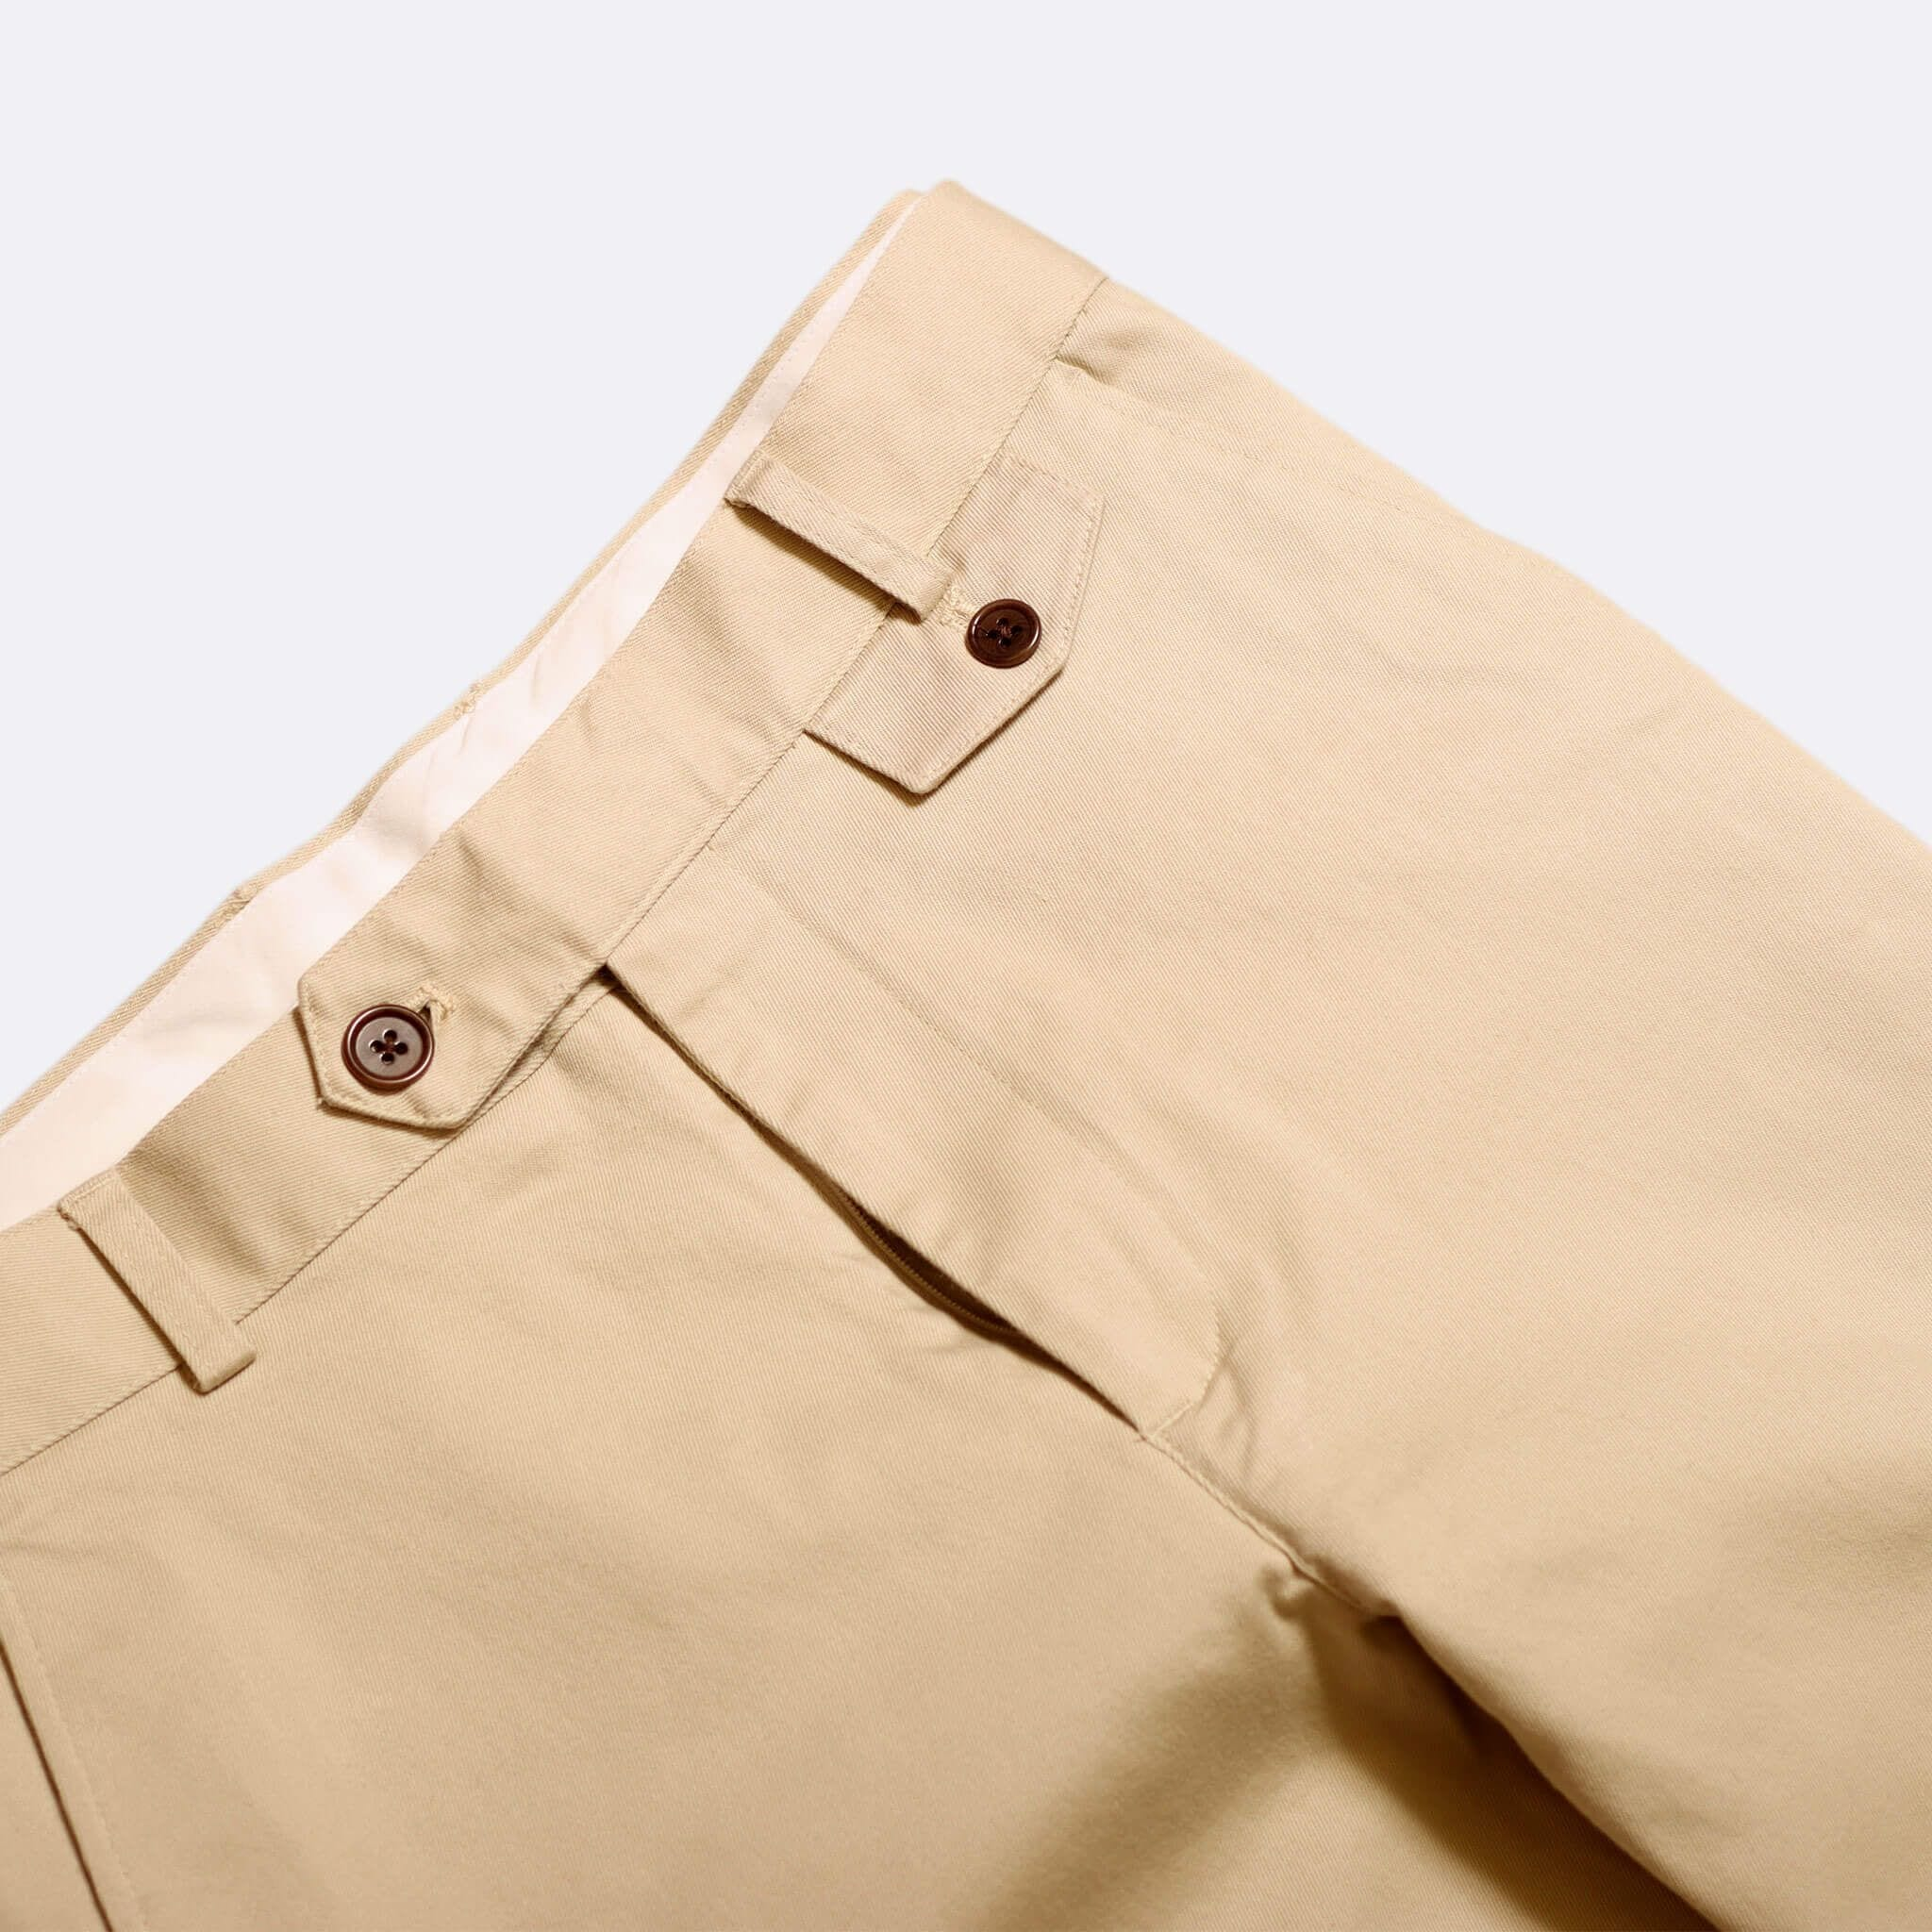 Far Afield Tricker Trousers a Pumice Stone BCI Cotton Twill Classic Tailored Smart Casual Trousers 2